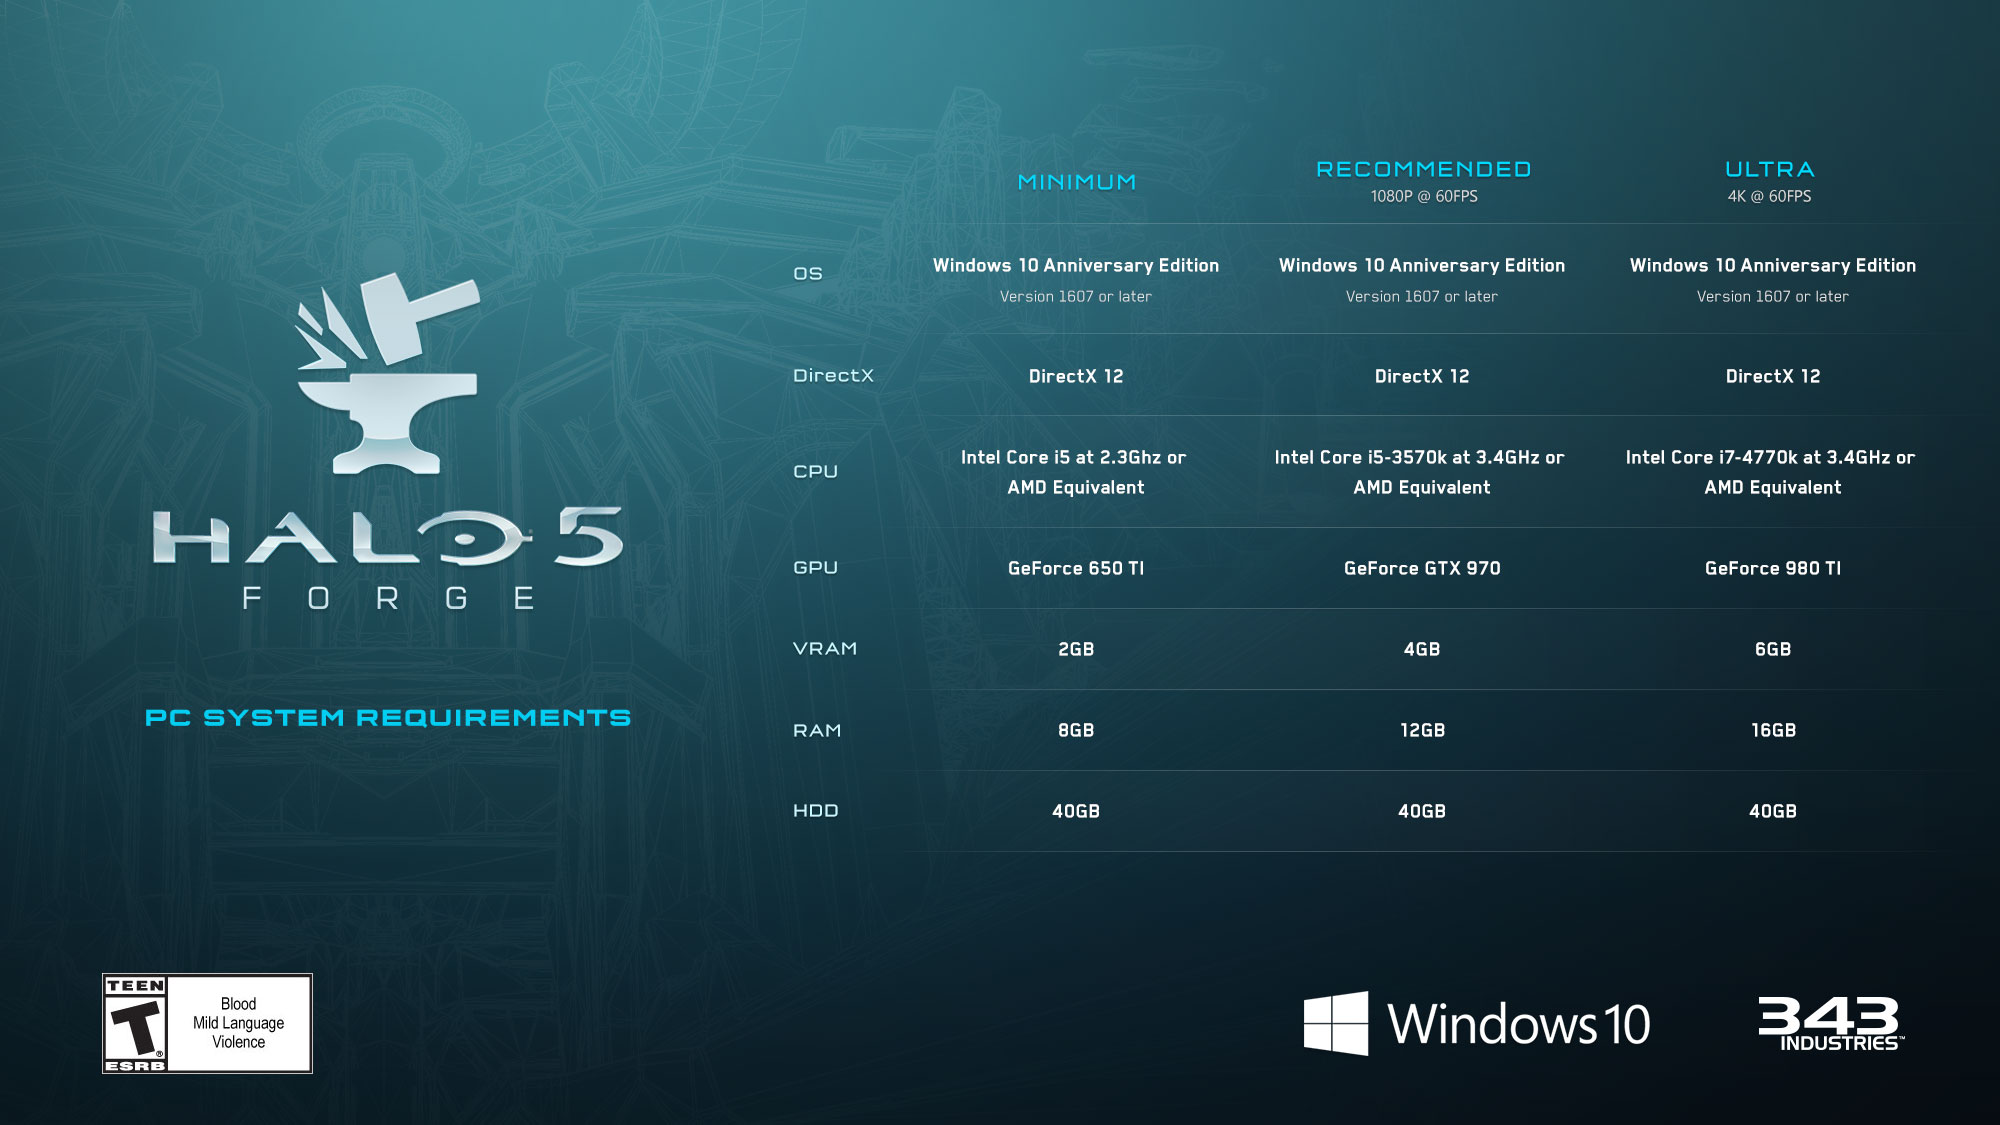 Halo 5 Forge System Requirements